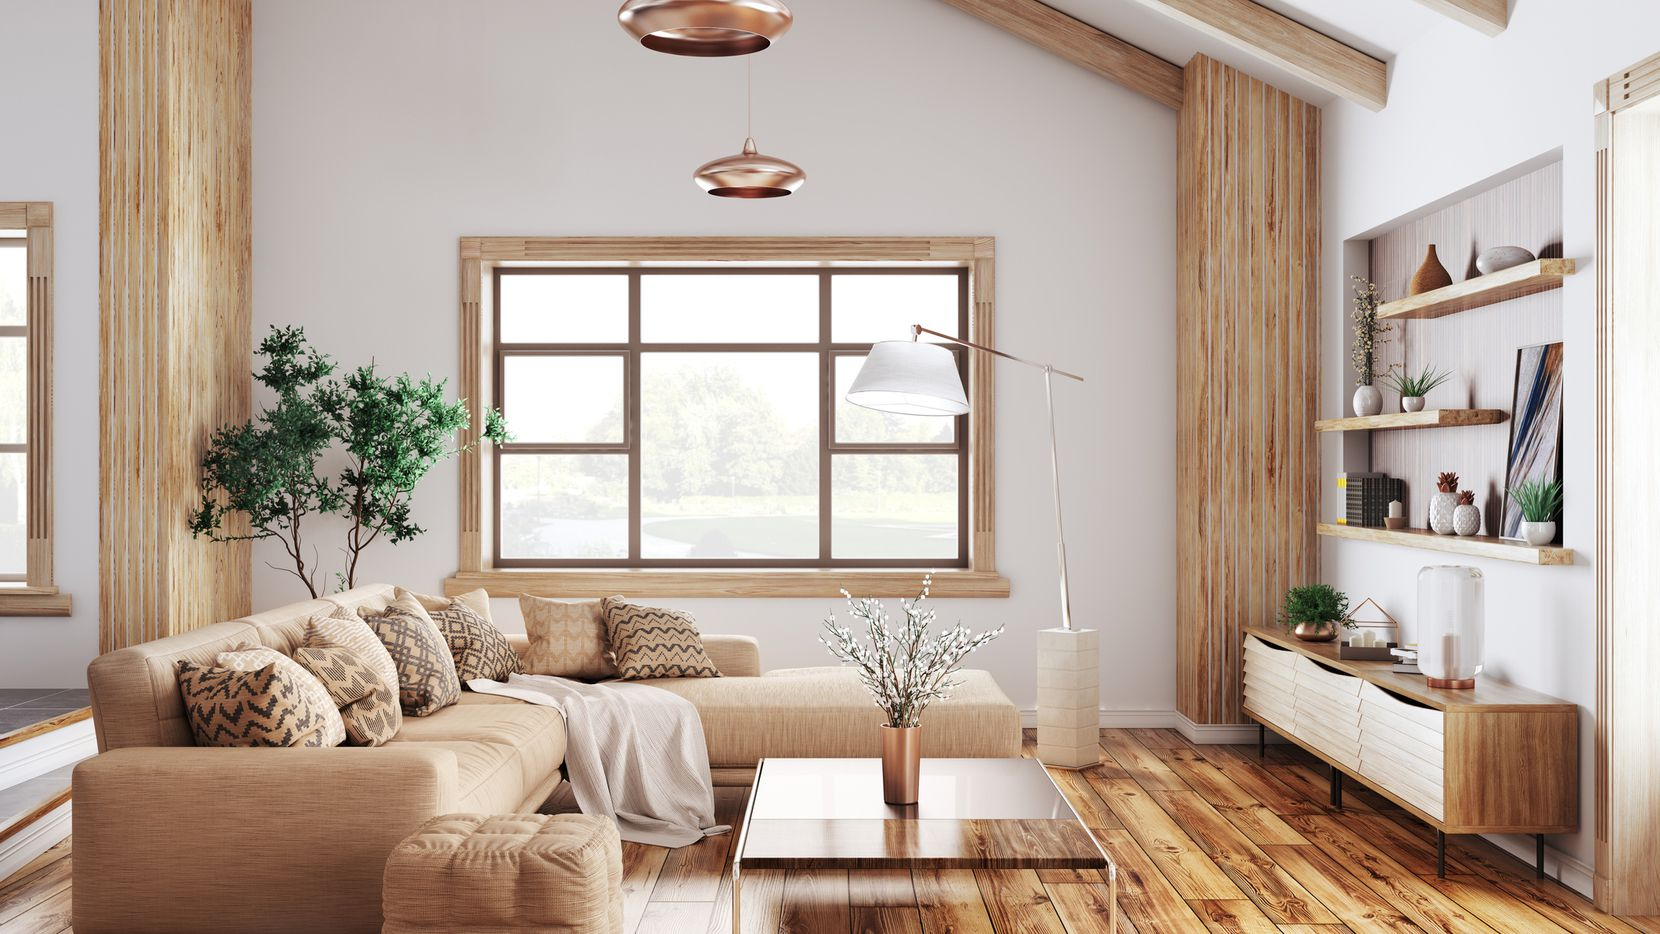 The first step in selecting trim profiles is to review builder and custom home magazines to see what is currently in style and what you may like.